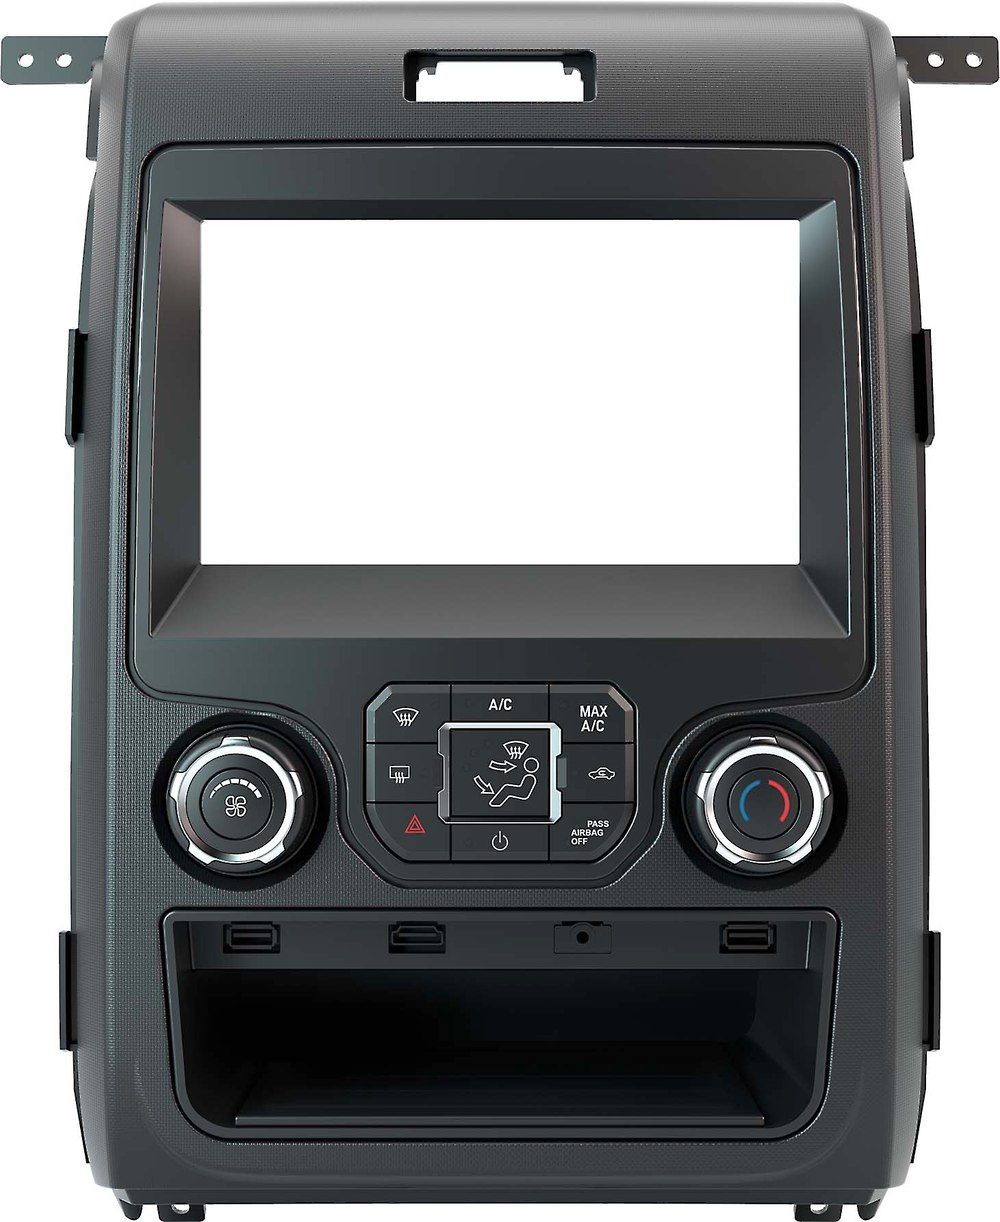 x794K150 F idatalink k150 dash kit install a new car stereo in select 2013 14 Dash Kit for F150 at crackthecode.co